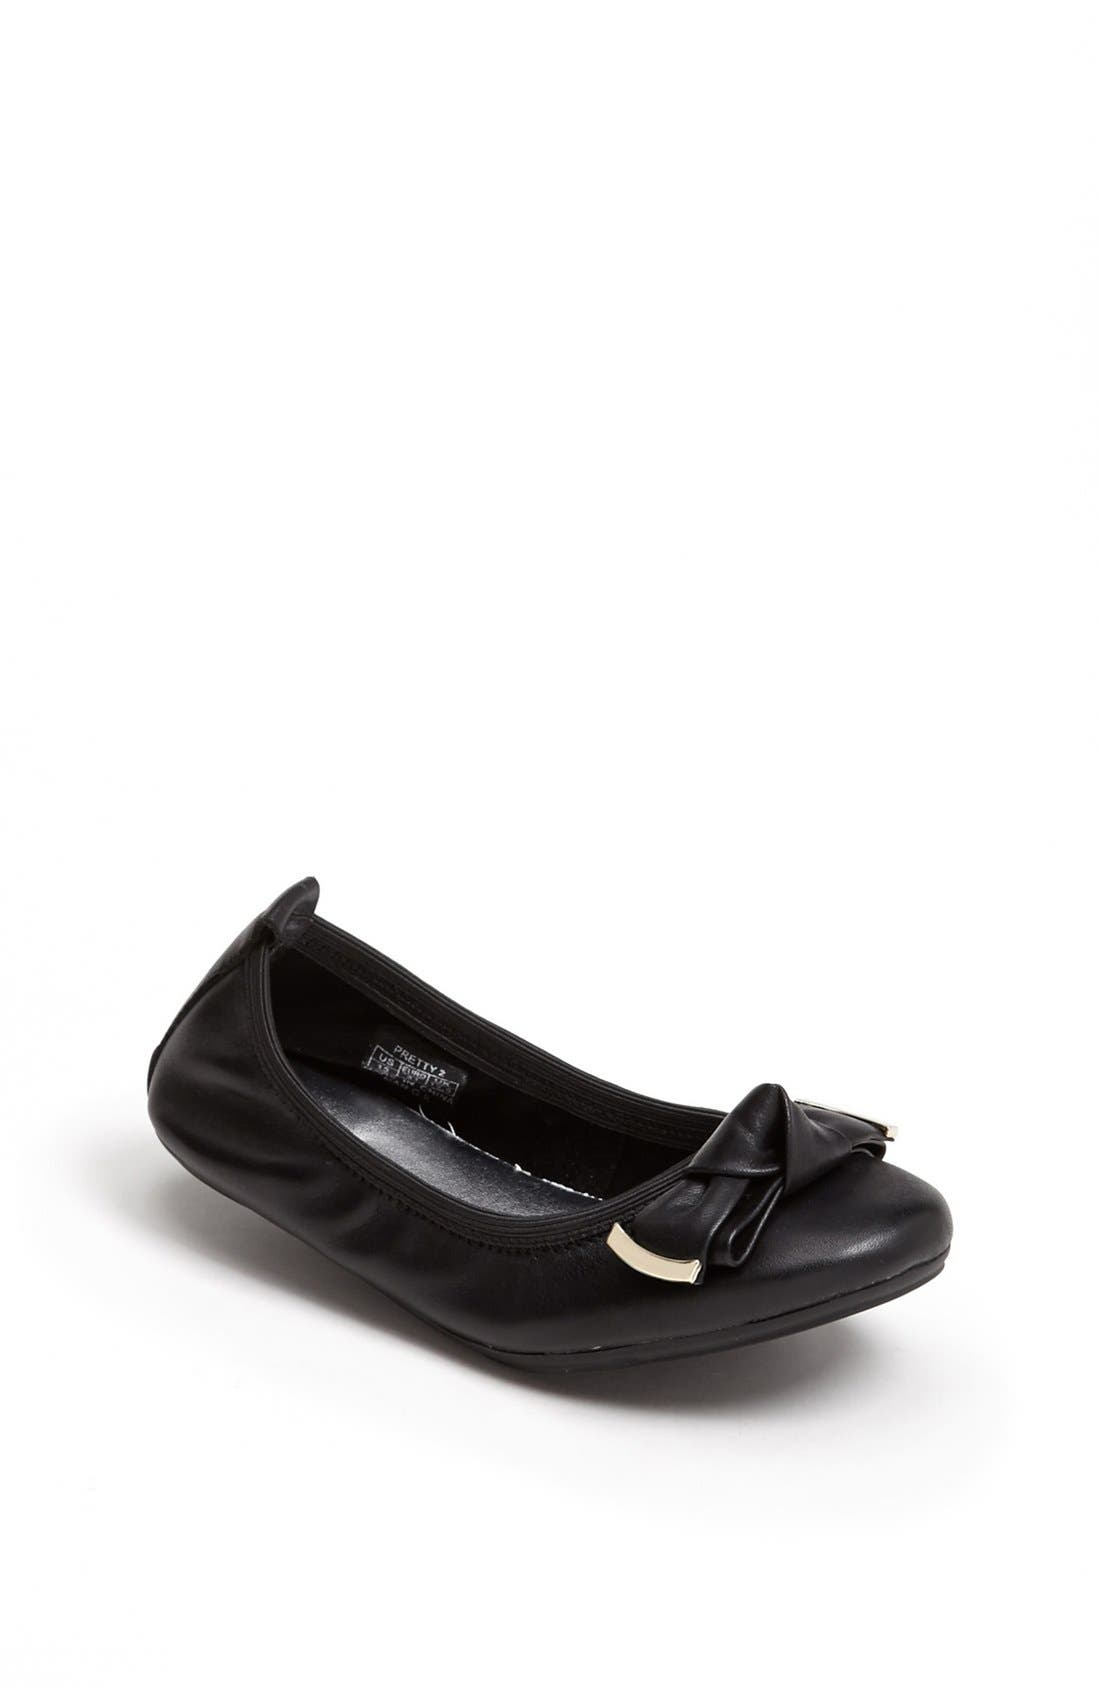 Alternate Image 1 Selected - Cole Haan 'Pretty 2' Ballerina Flat (Little Kid & Big Kid)